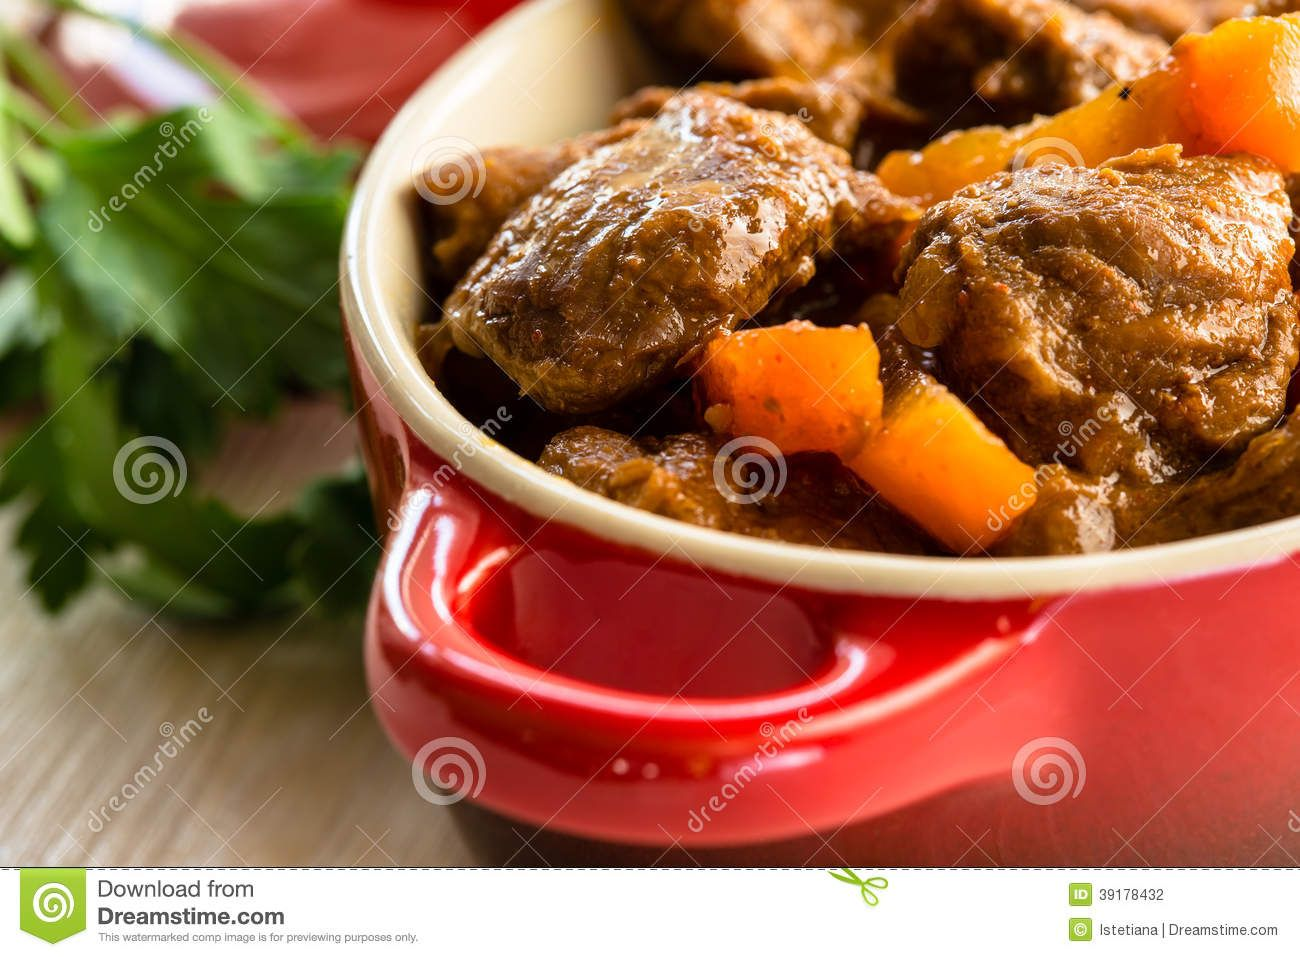 Beef Stew With Carrot - Download From Over 29 Million High Quality Stock Photos, Images, Vectors. Sign up for FREE today. Image: 39178432